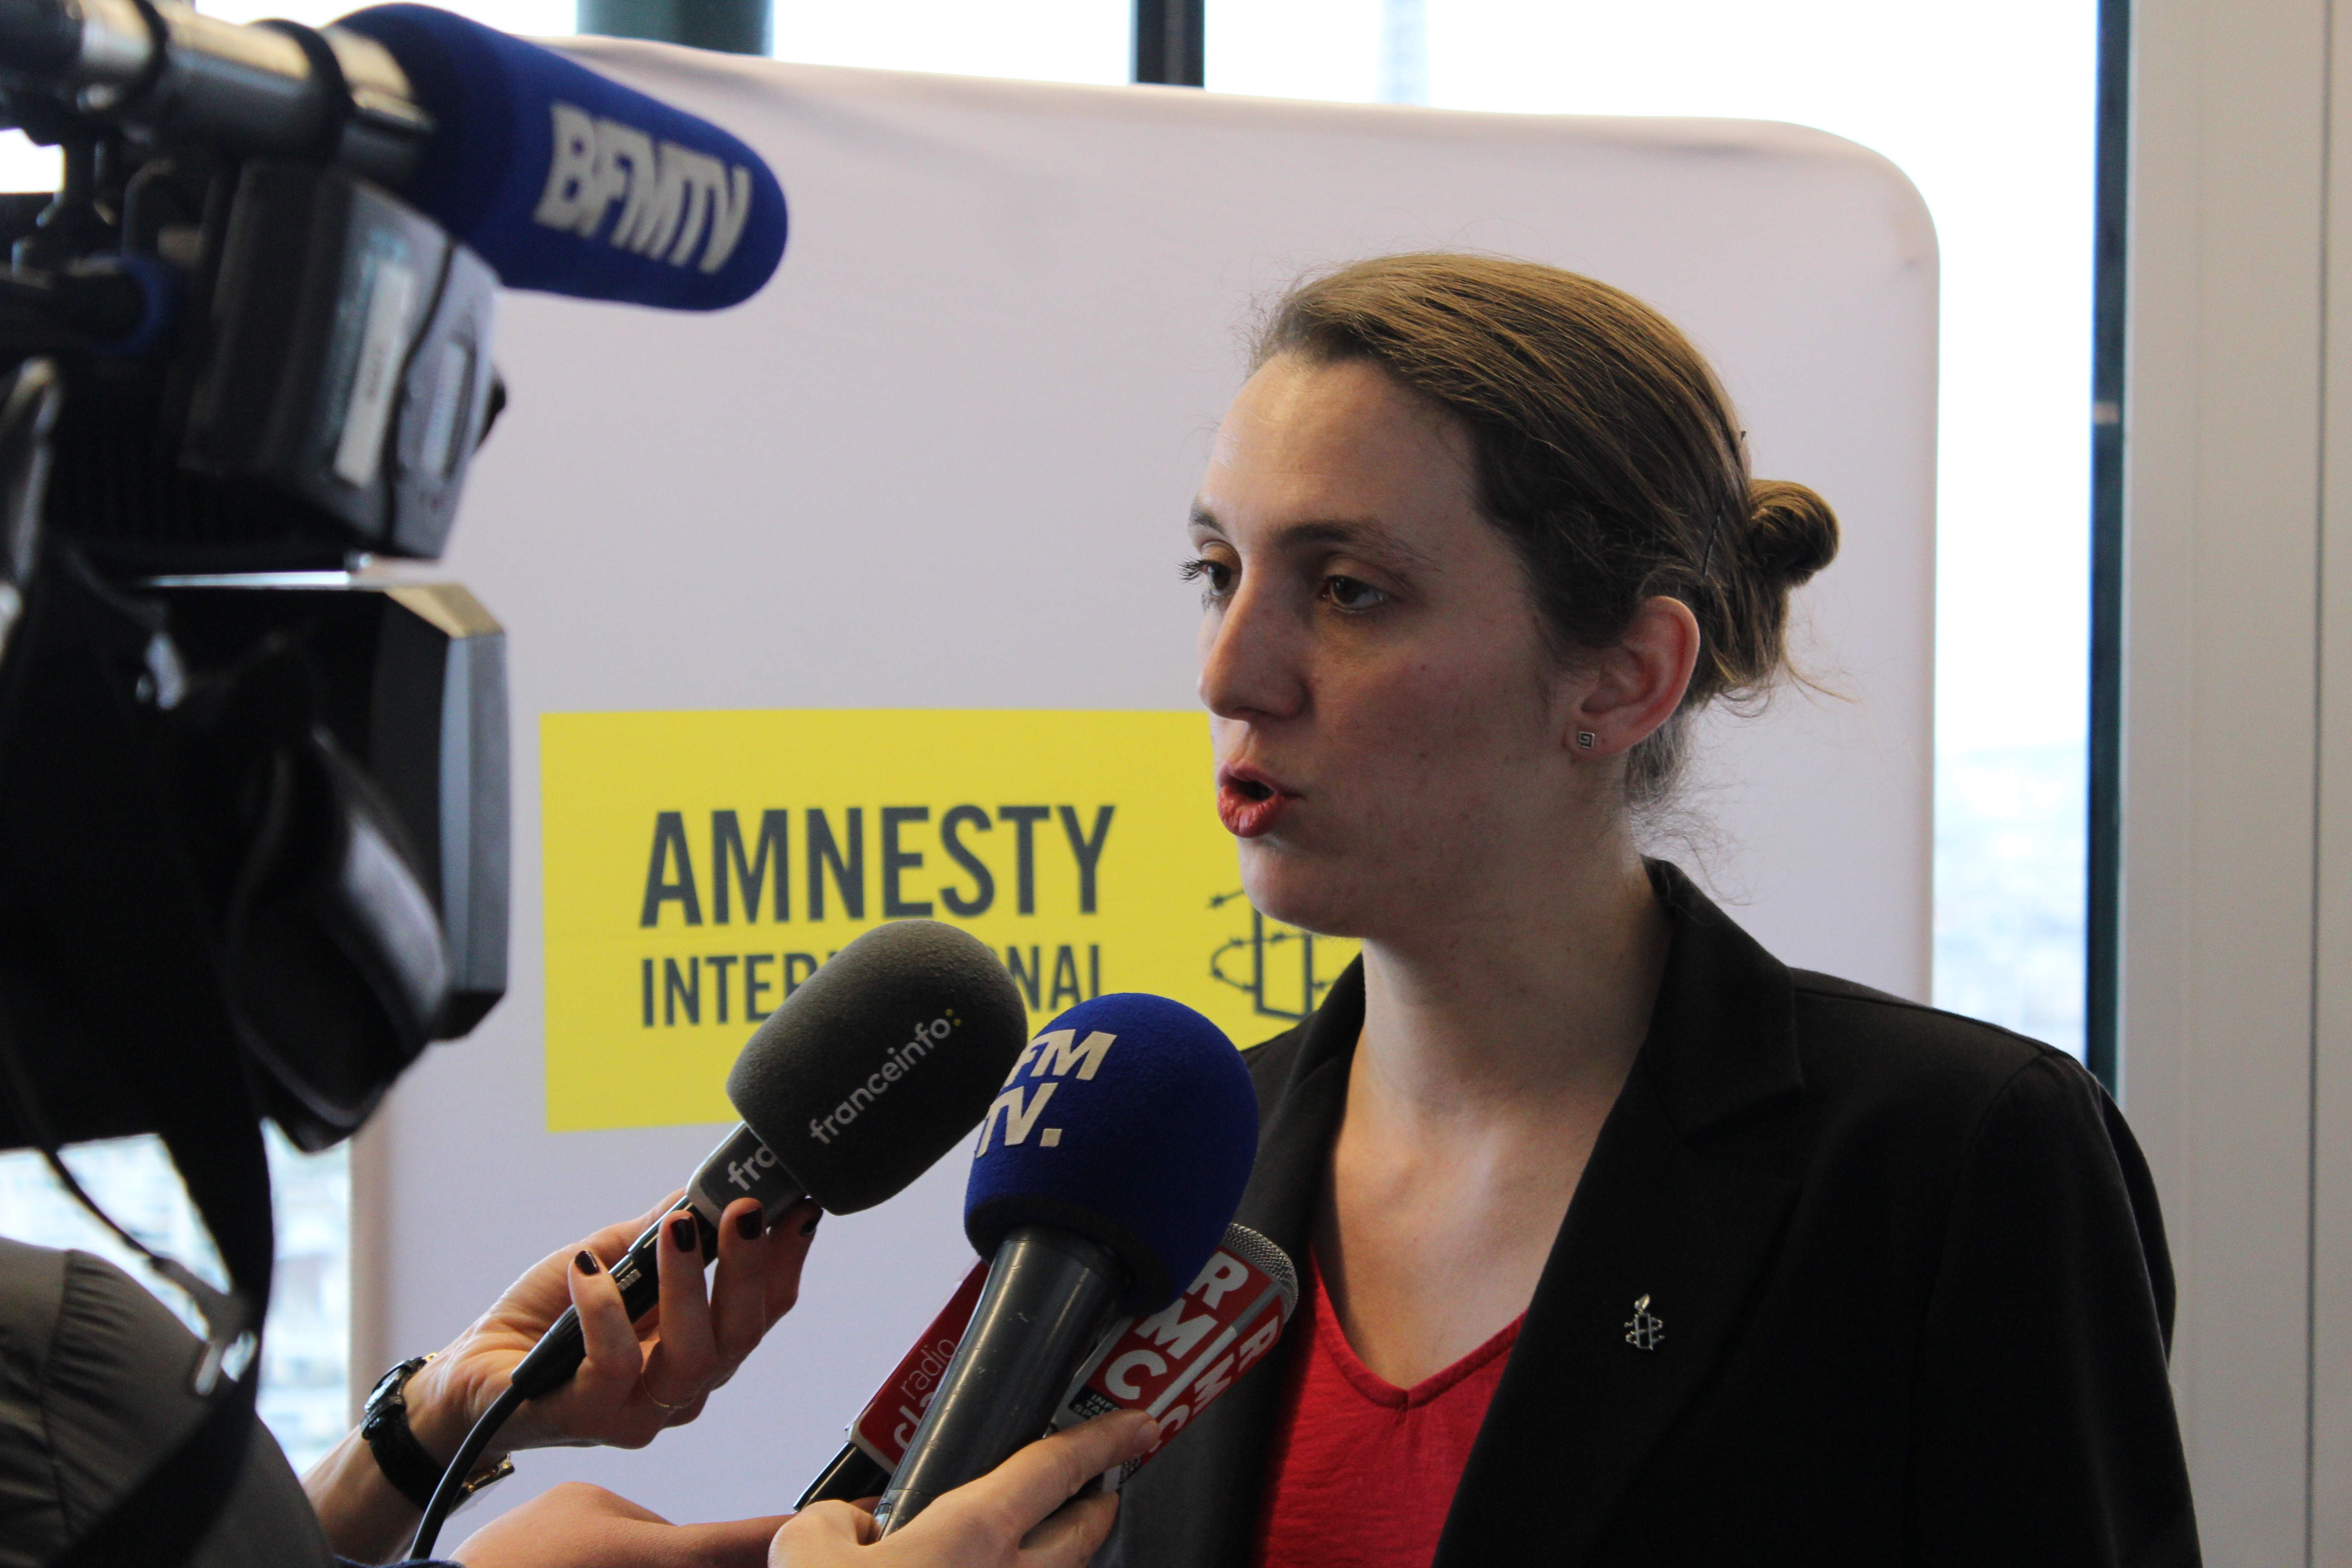 Camille Blanc, présidente de la section France d'Amnesty International